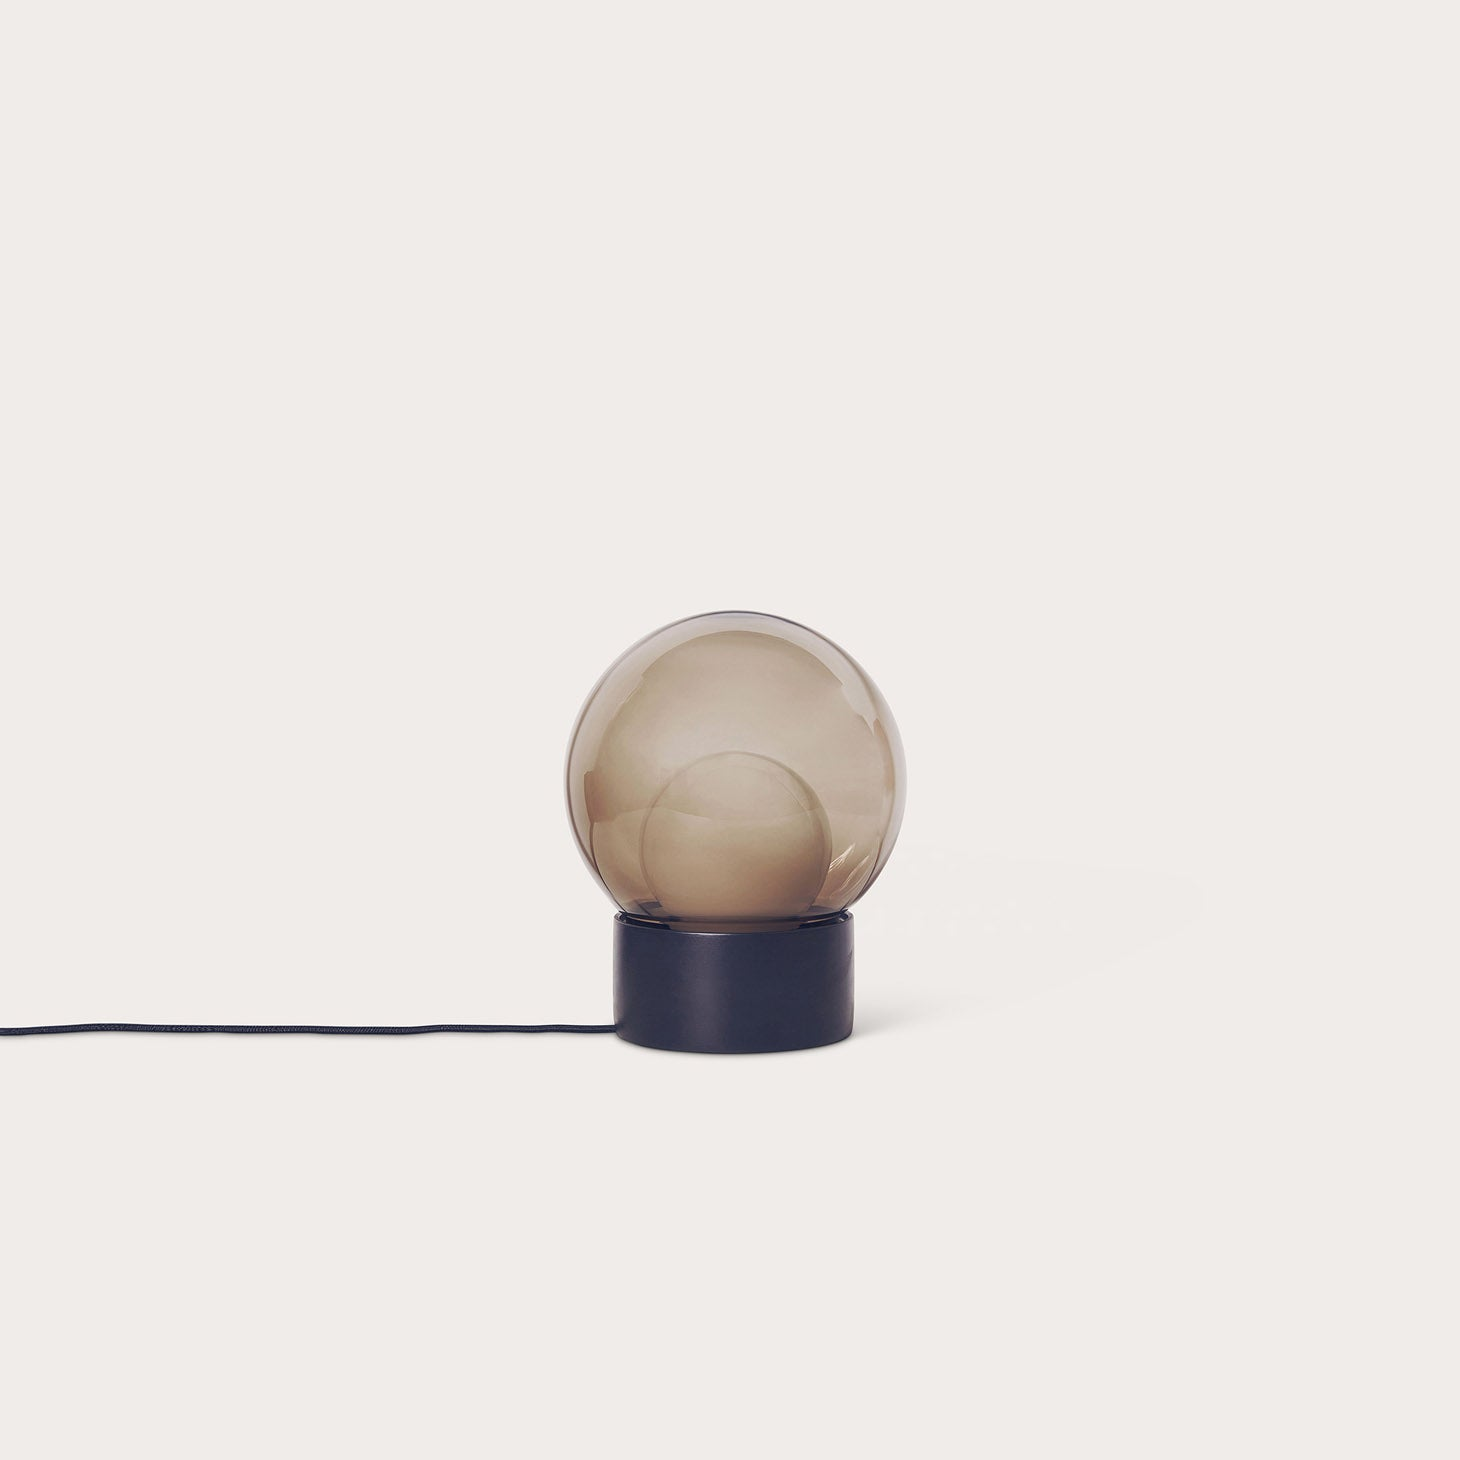 Boule Lighting Sebastian Herkner Designer Furniture Sku: 747-160-10028